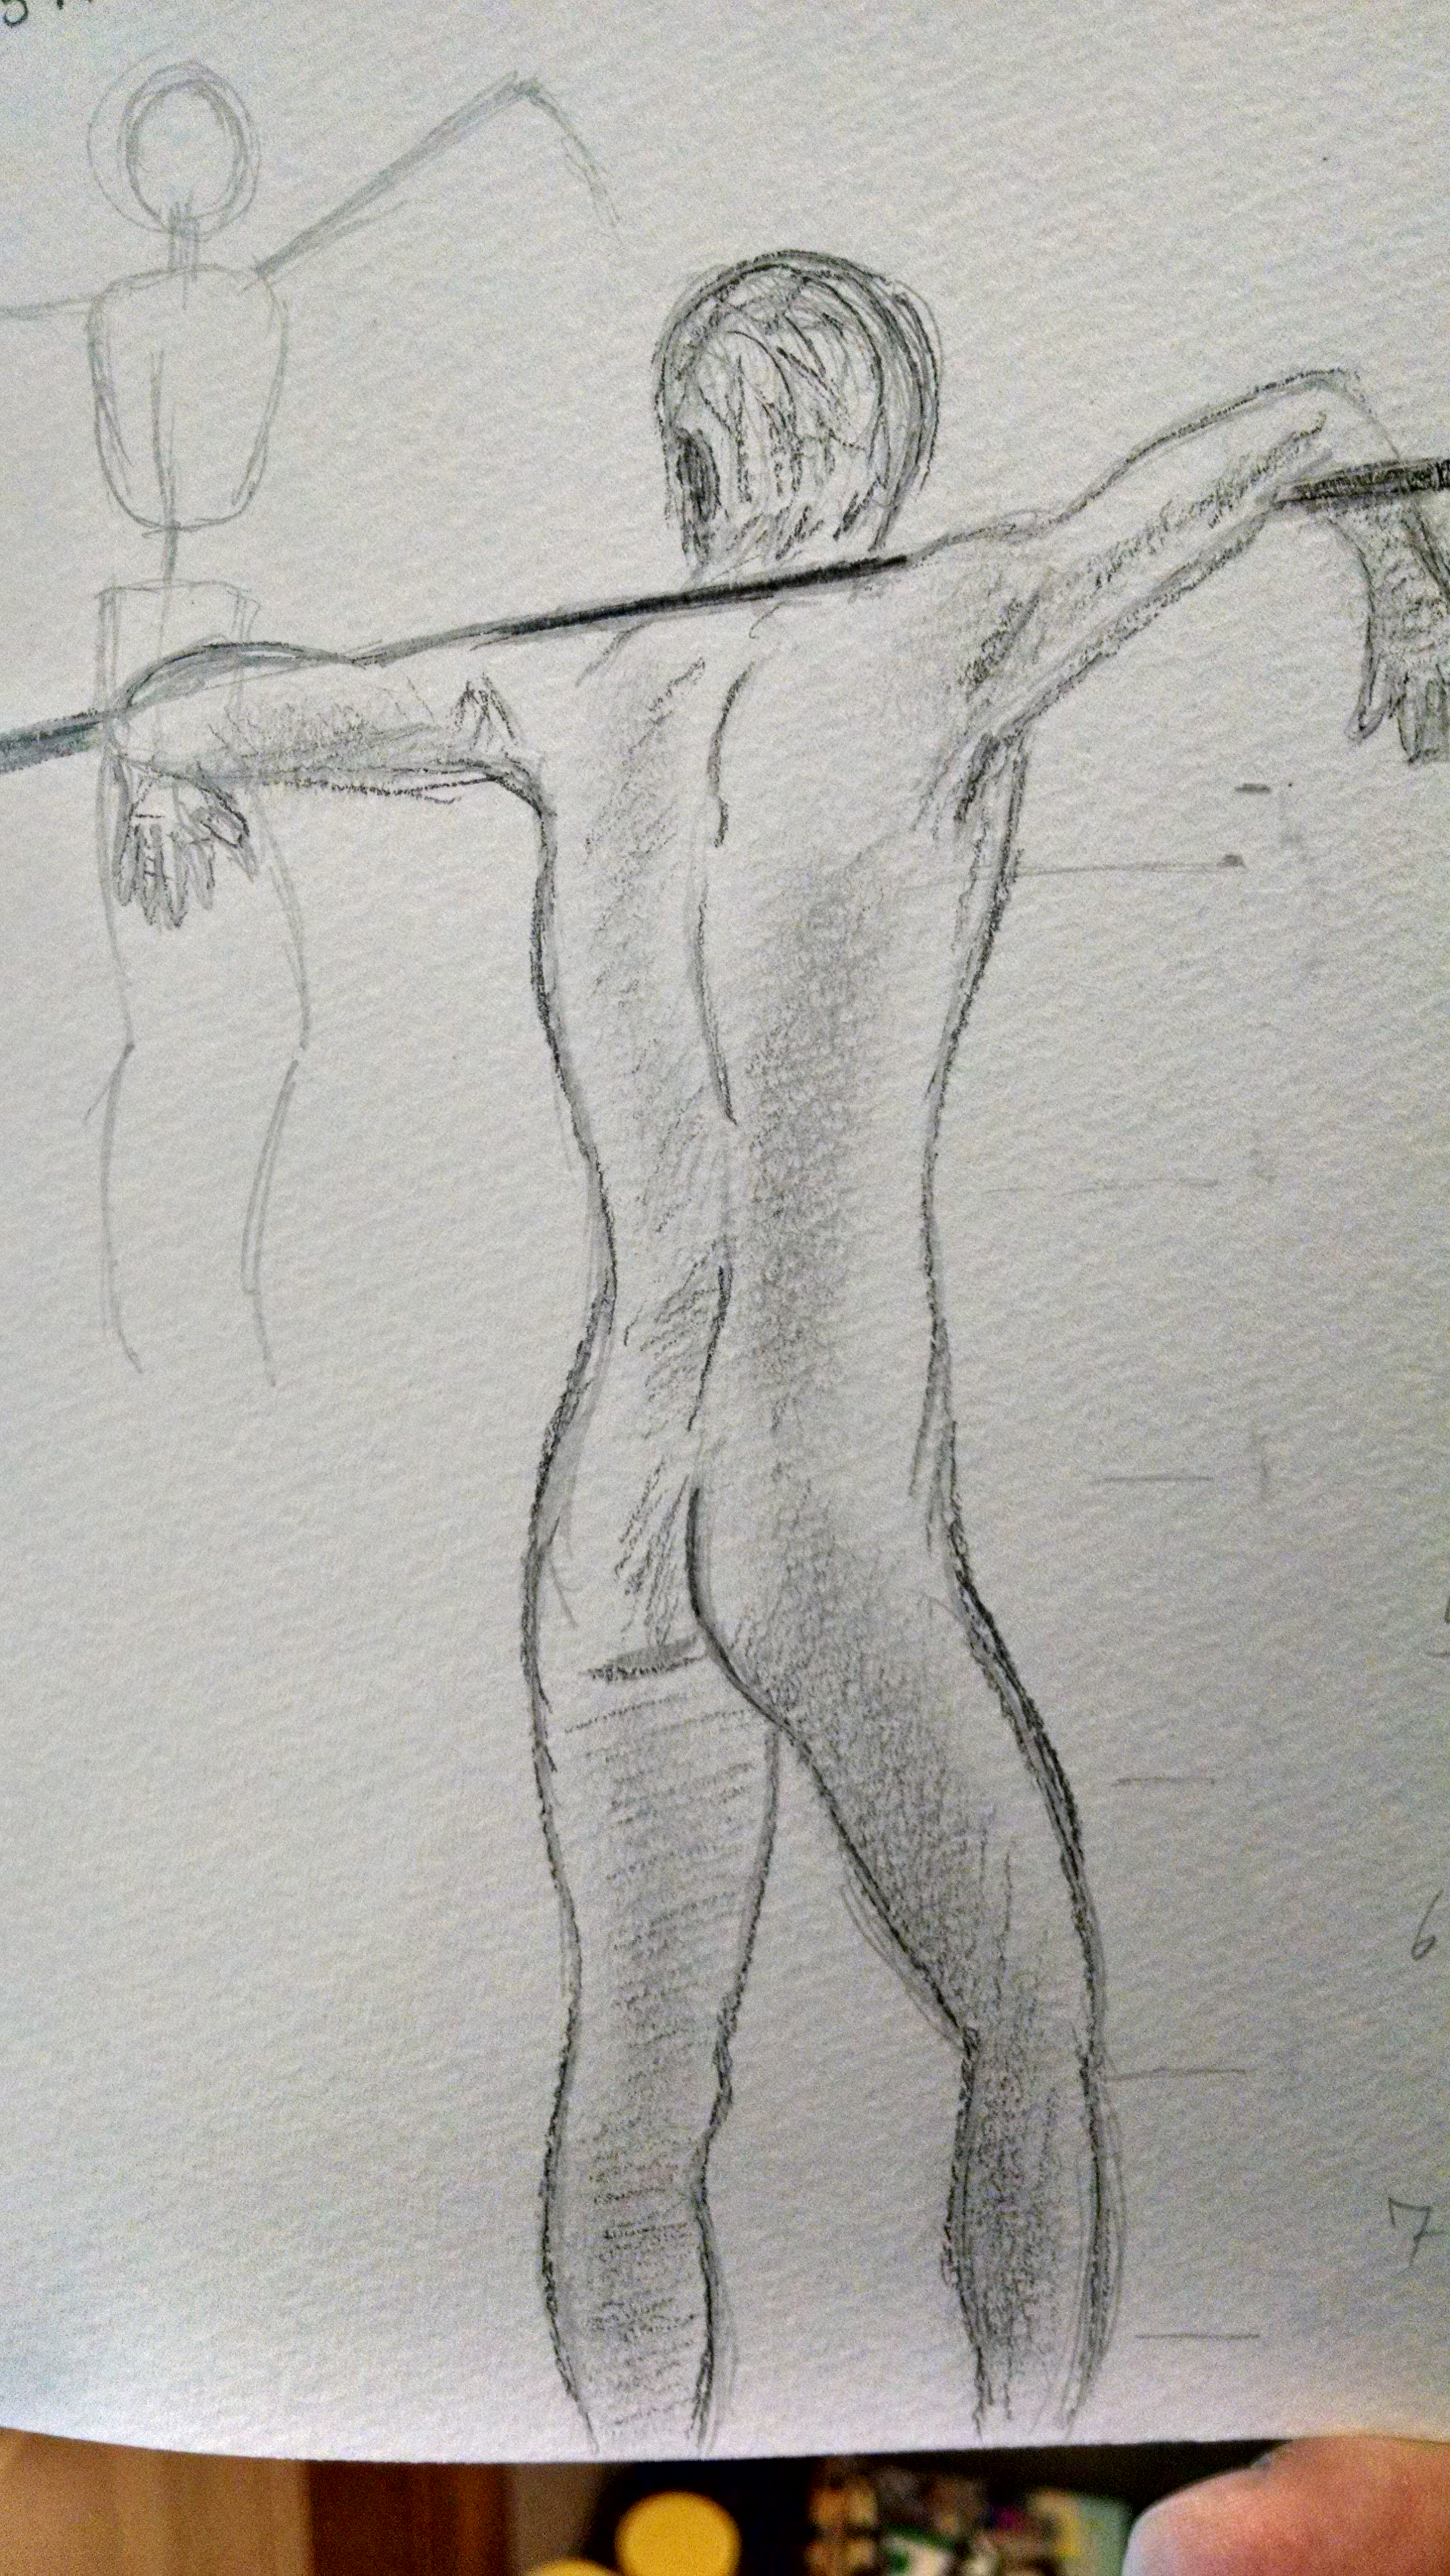 Live figure drawing attempt by Benjorr